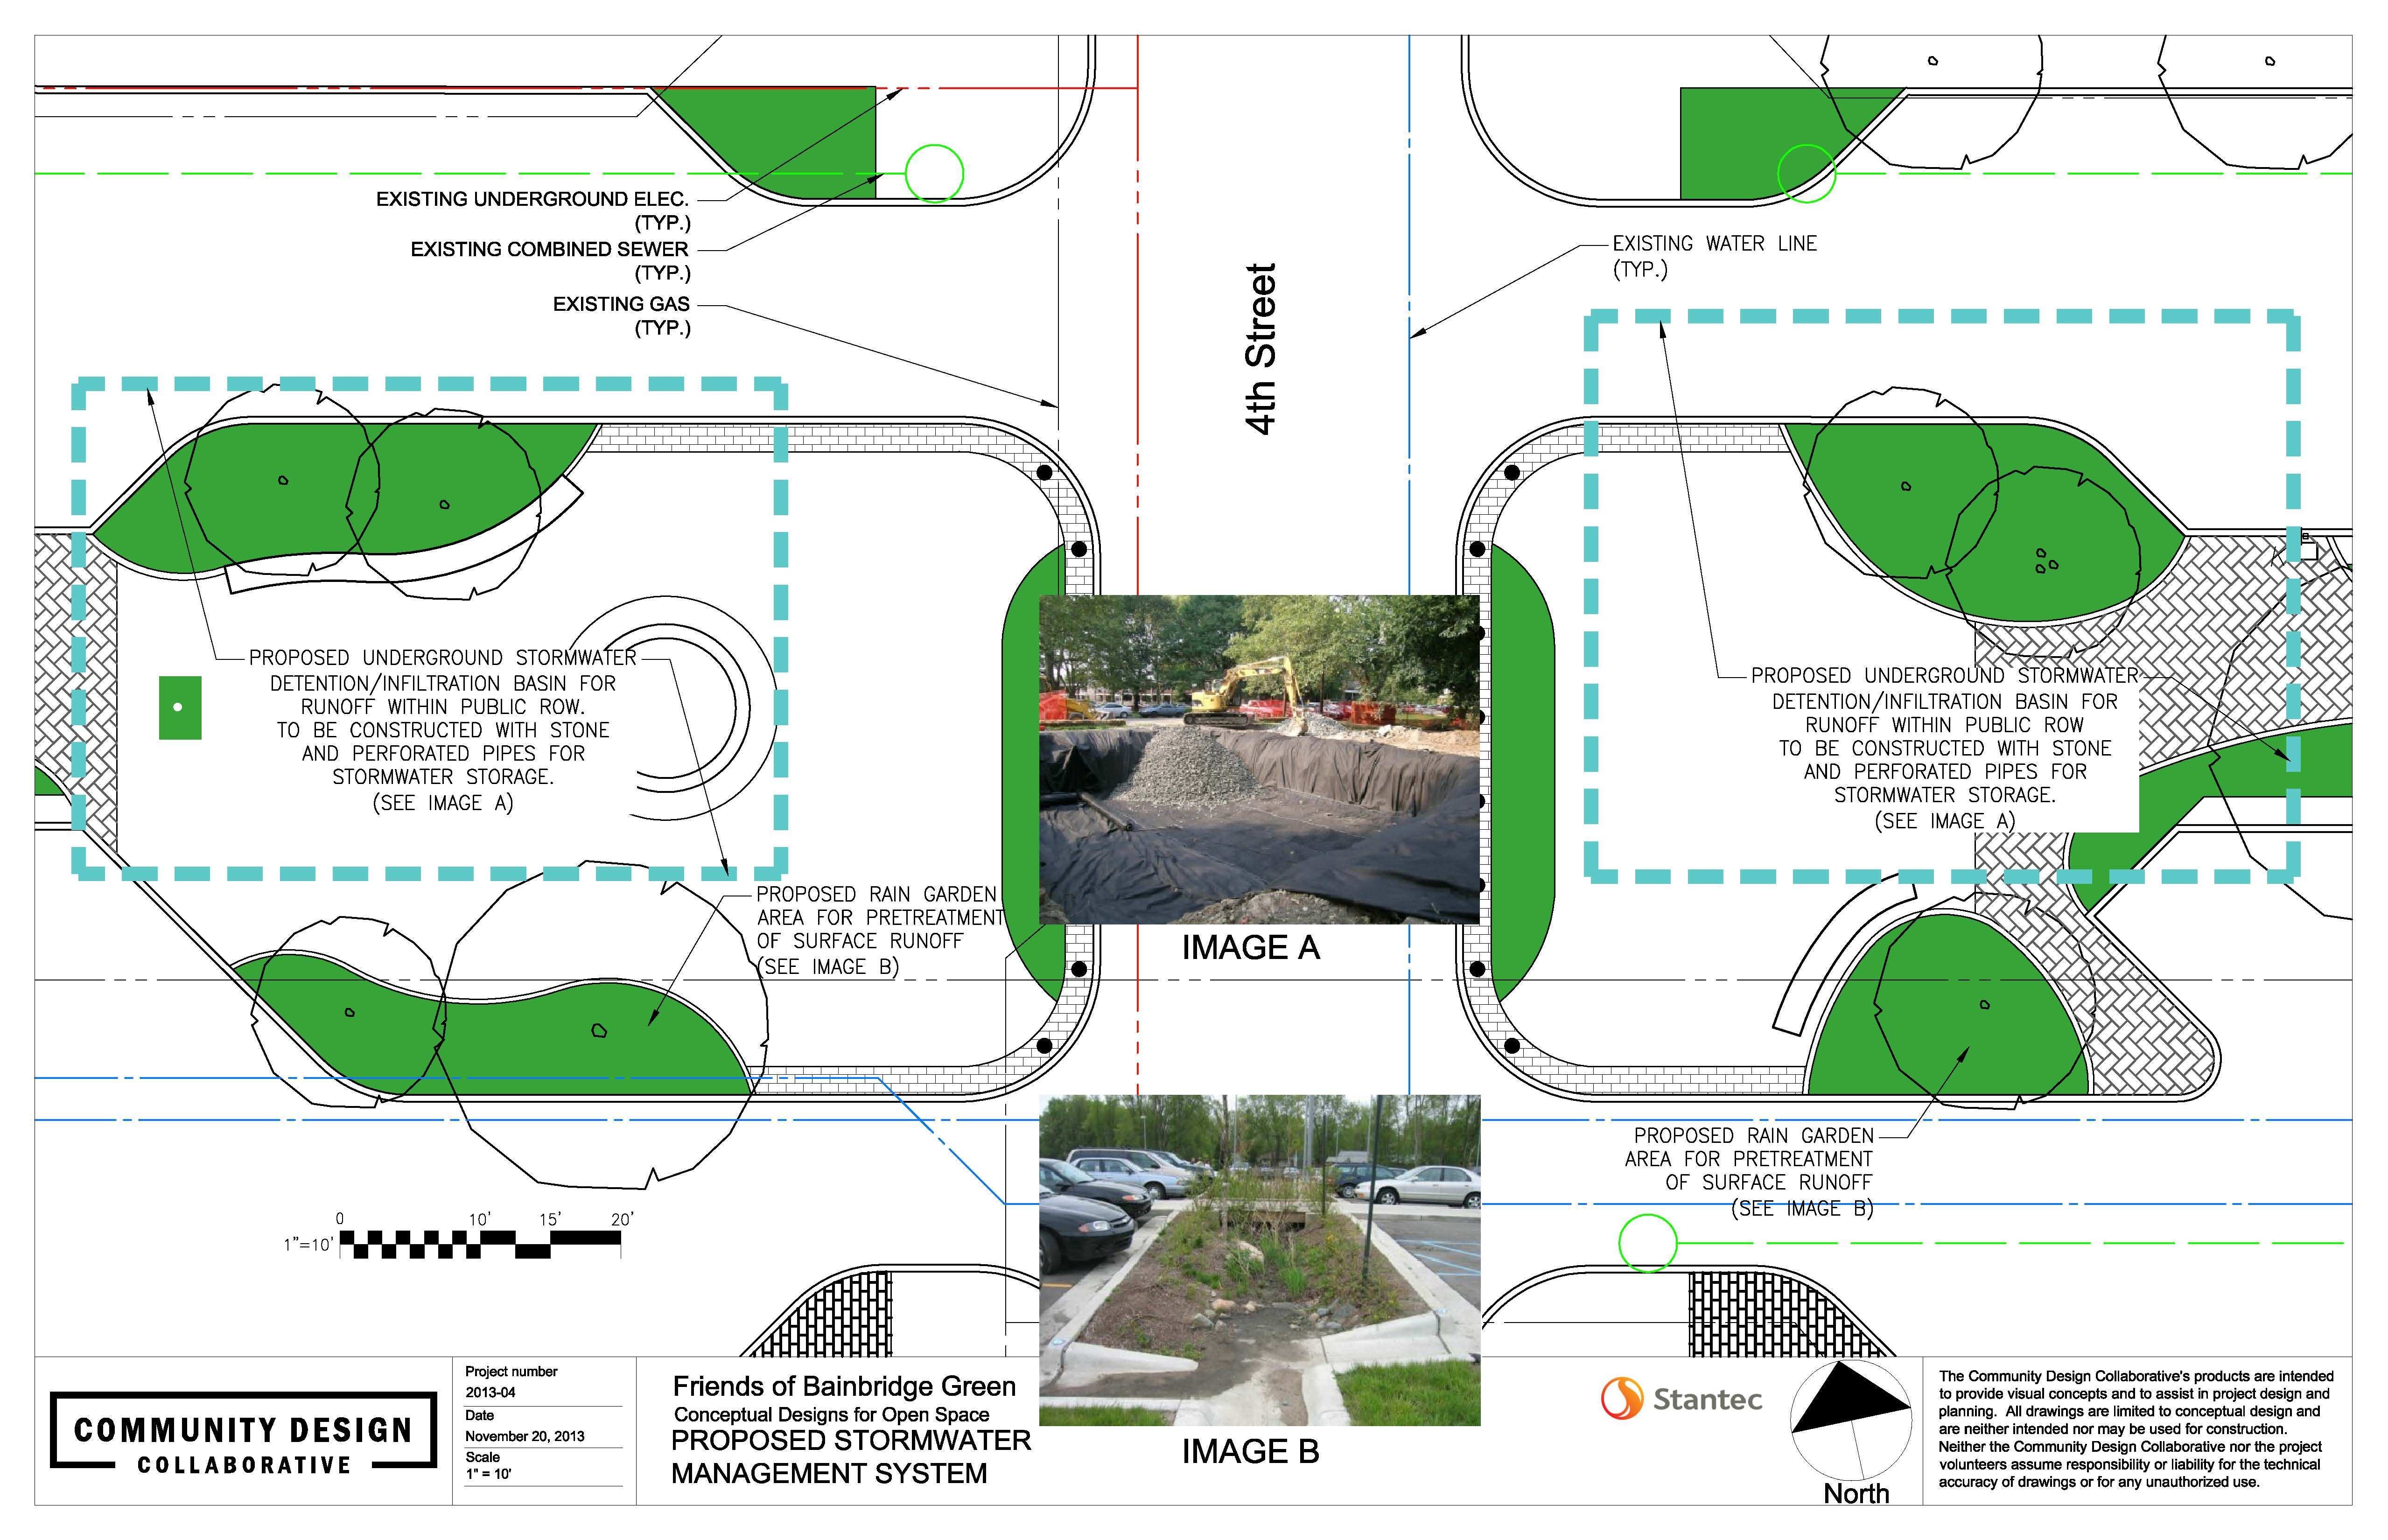 Plazas at 4th and Bainbridge present green infrastructure opportunities | Community Design Collaborative